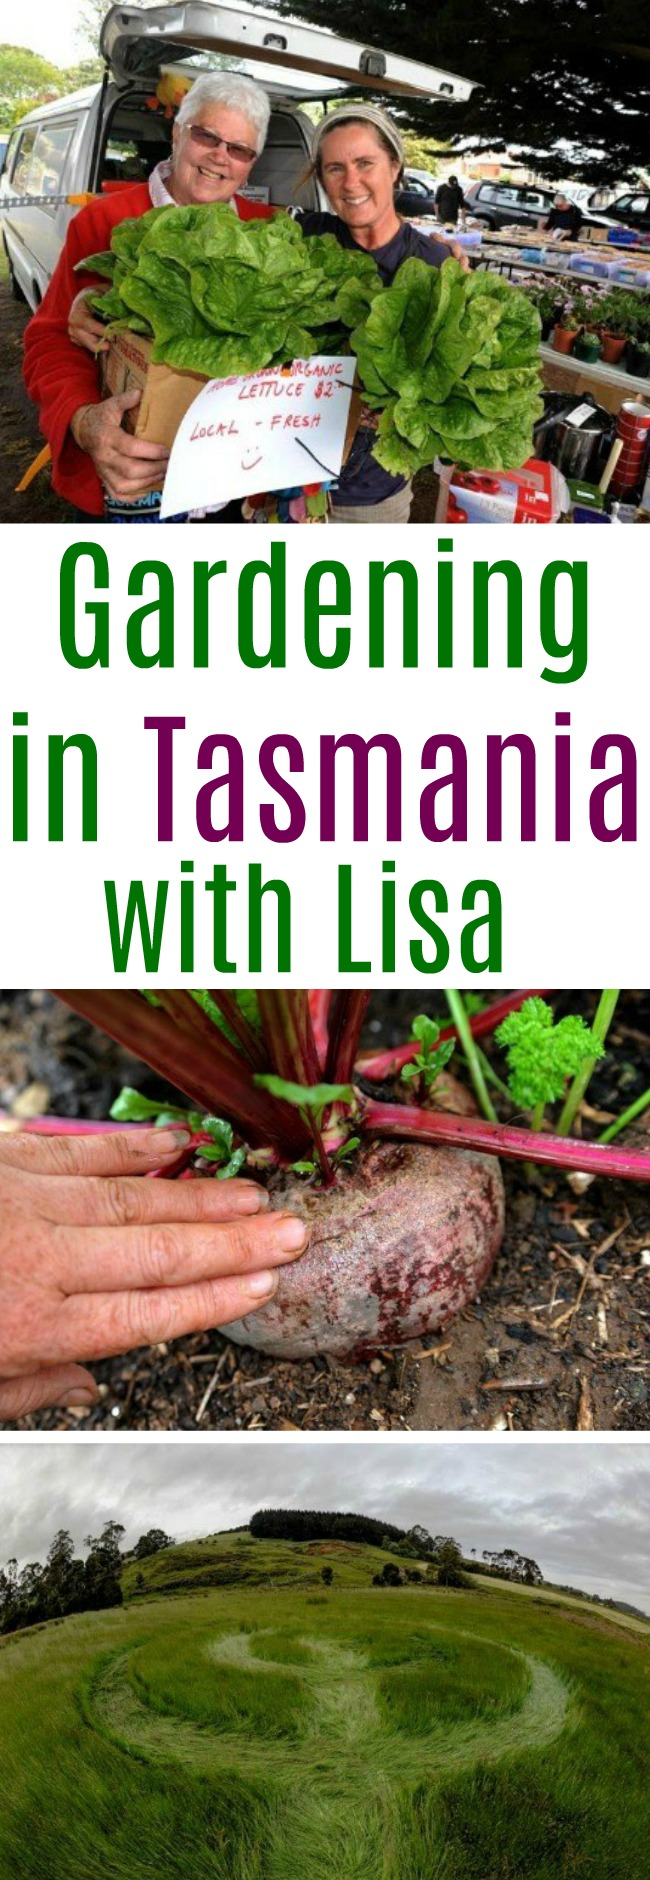 Lisa From Tasmania Shares Her Garden Photos With Us